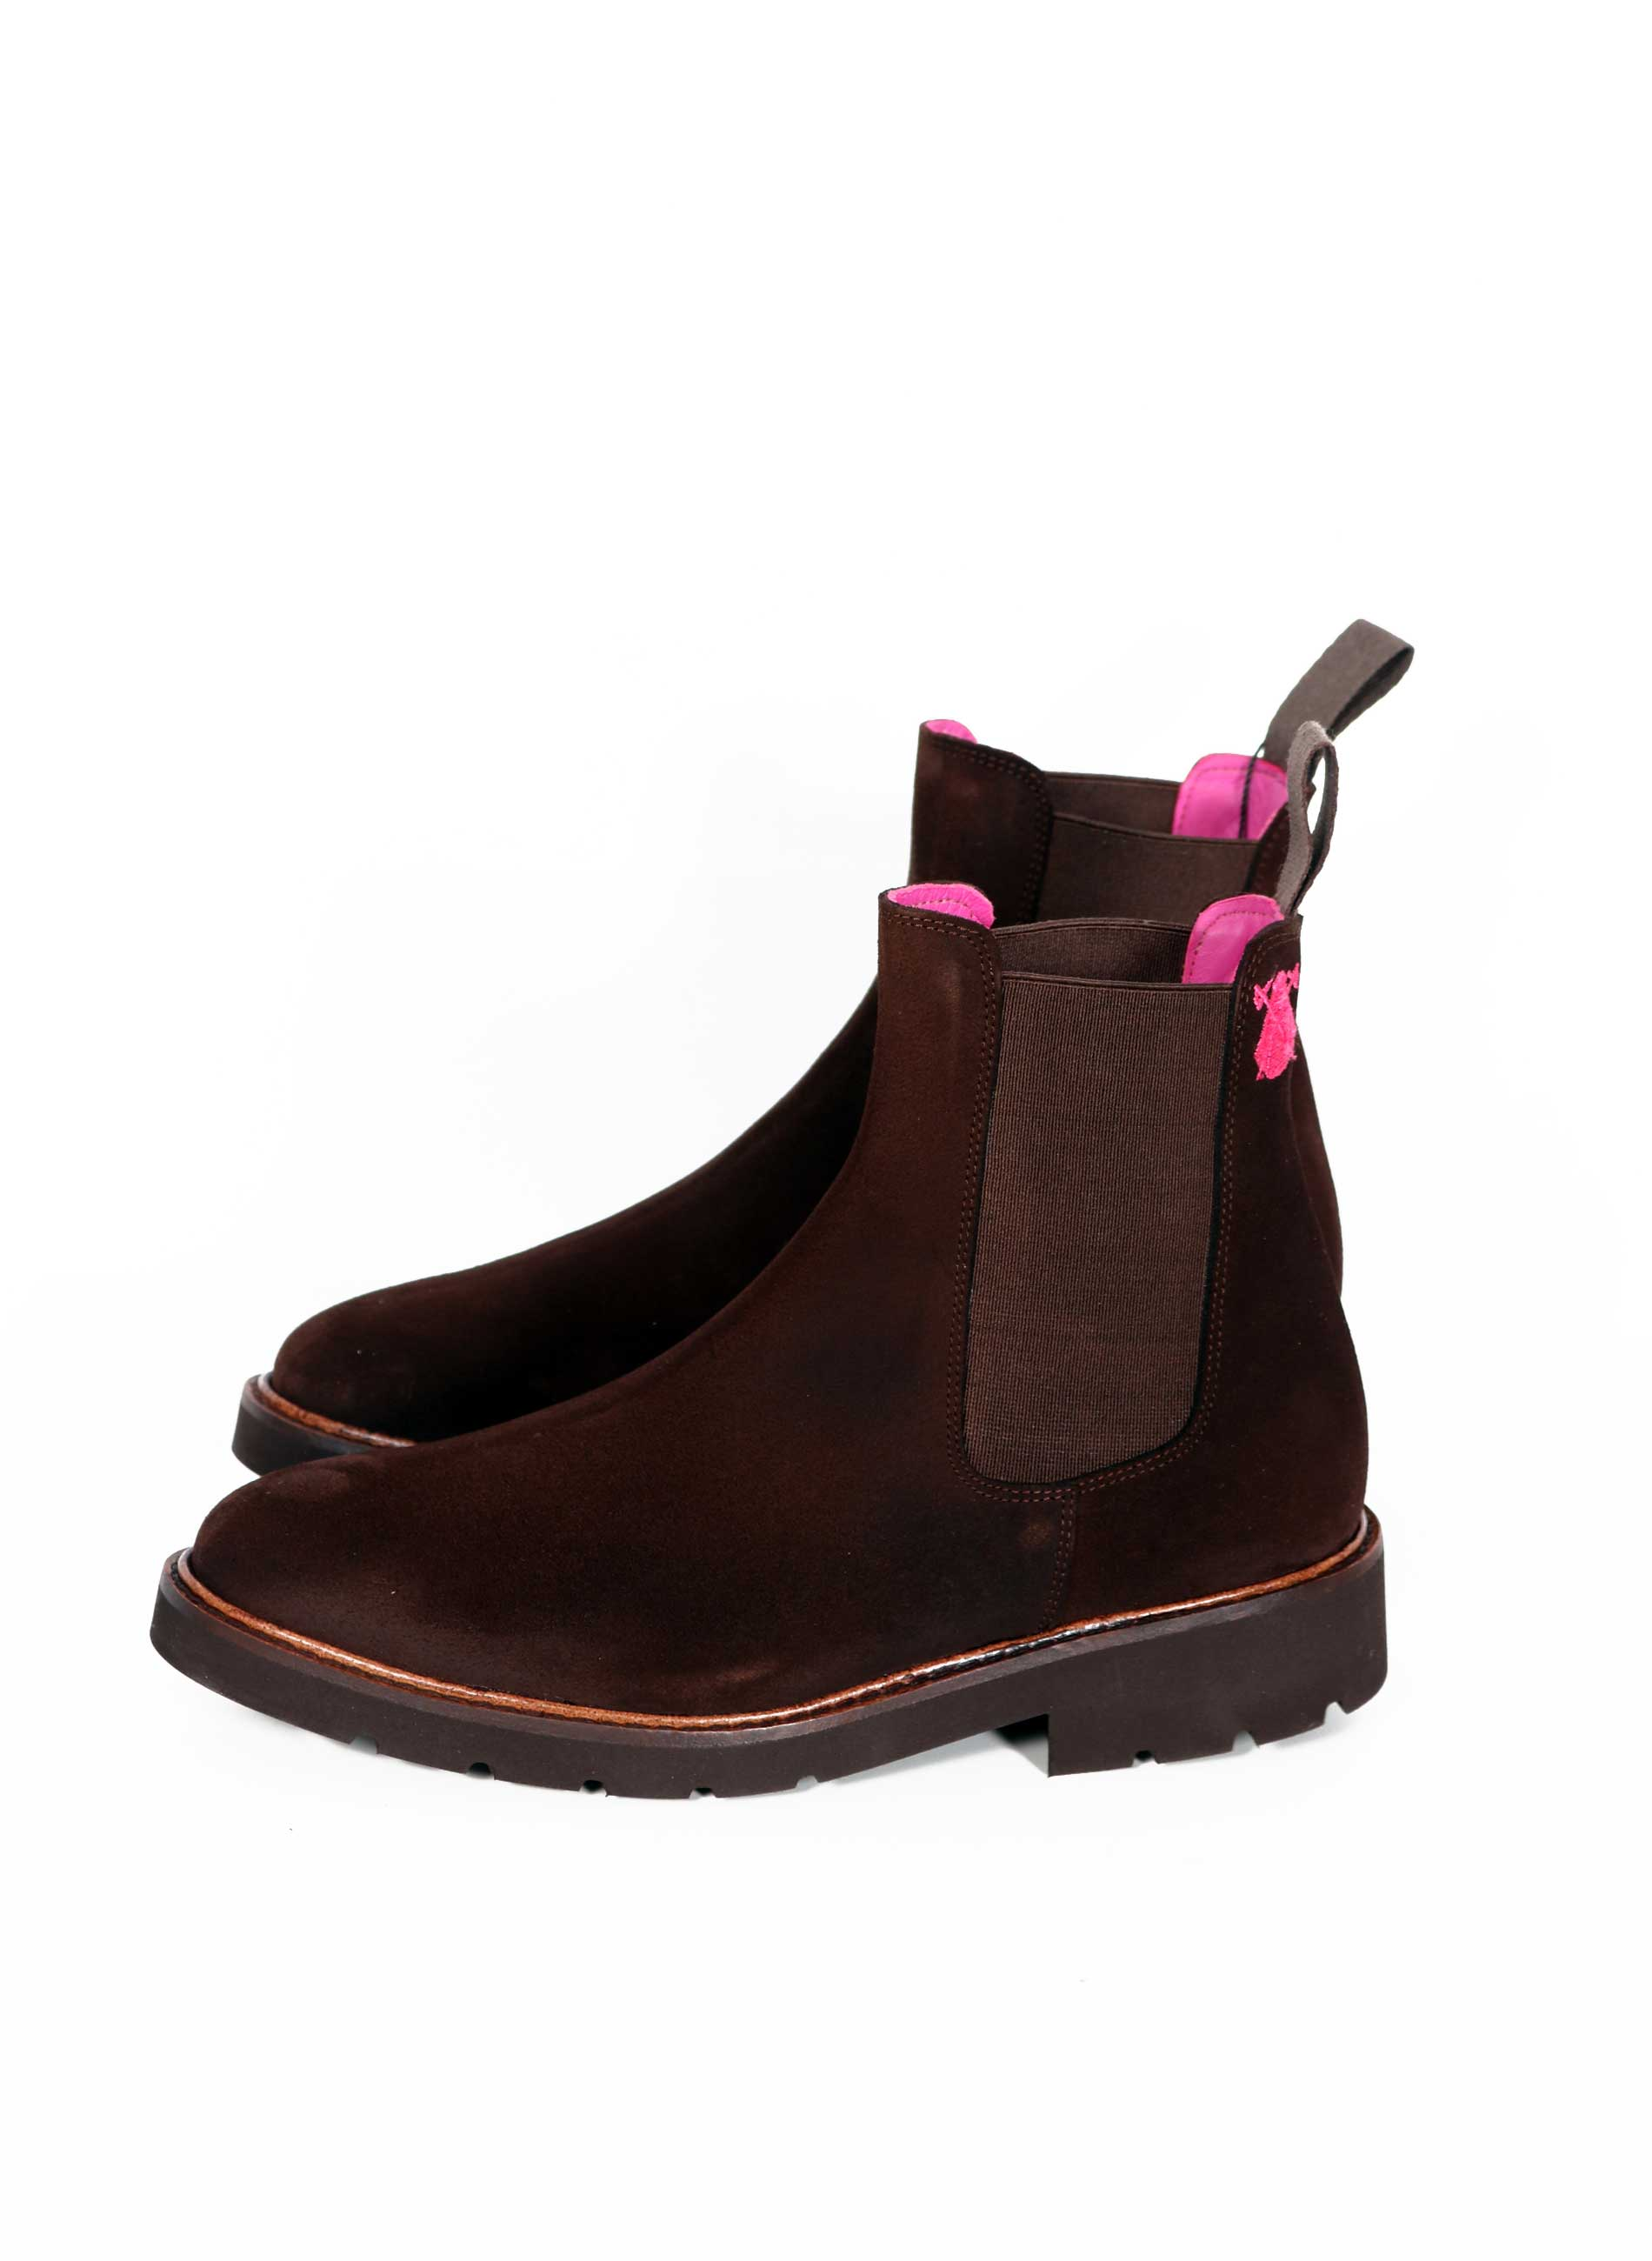 Valverde del Camino Chocolate Brown Nobuck Women's Ankle Boots